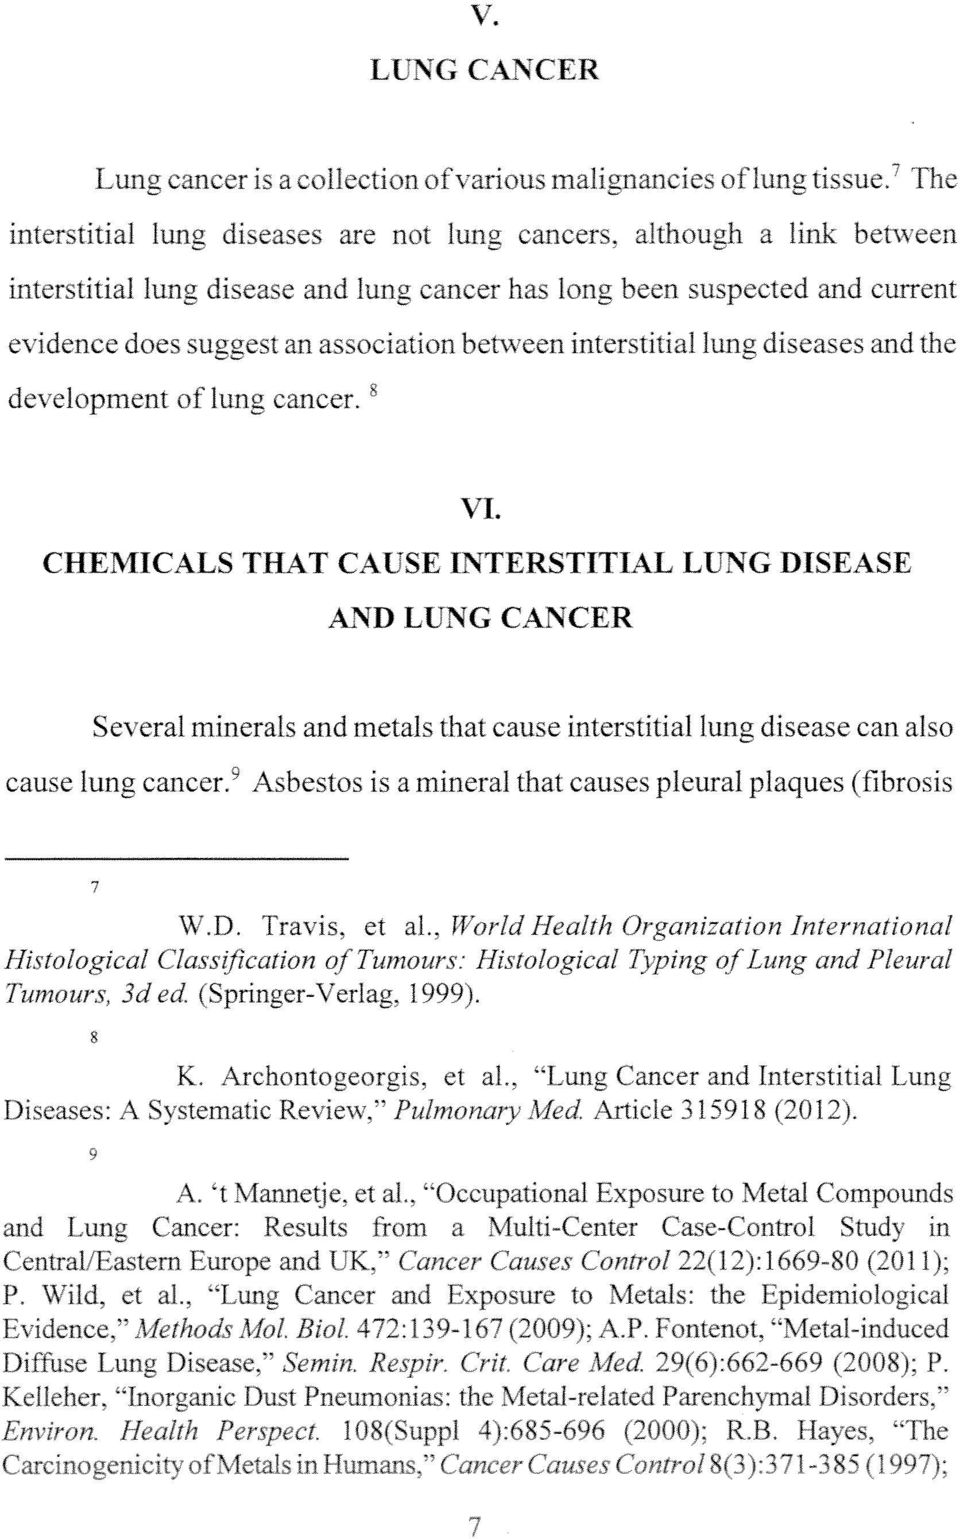 suggest an association between interstitial lung diseases and the development of lung cancer, VI CHEMICALS THAT CAUSE INTERSTITIAL LUNG DISEASE AND LUNG CANCER Several minerals and metals that cause